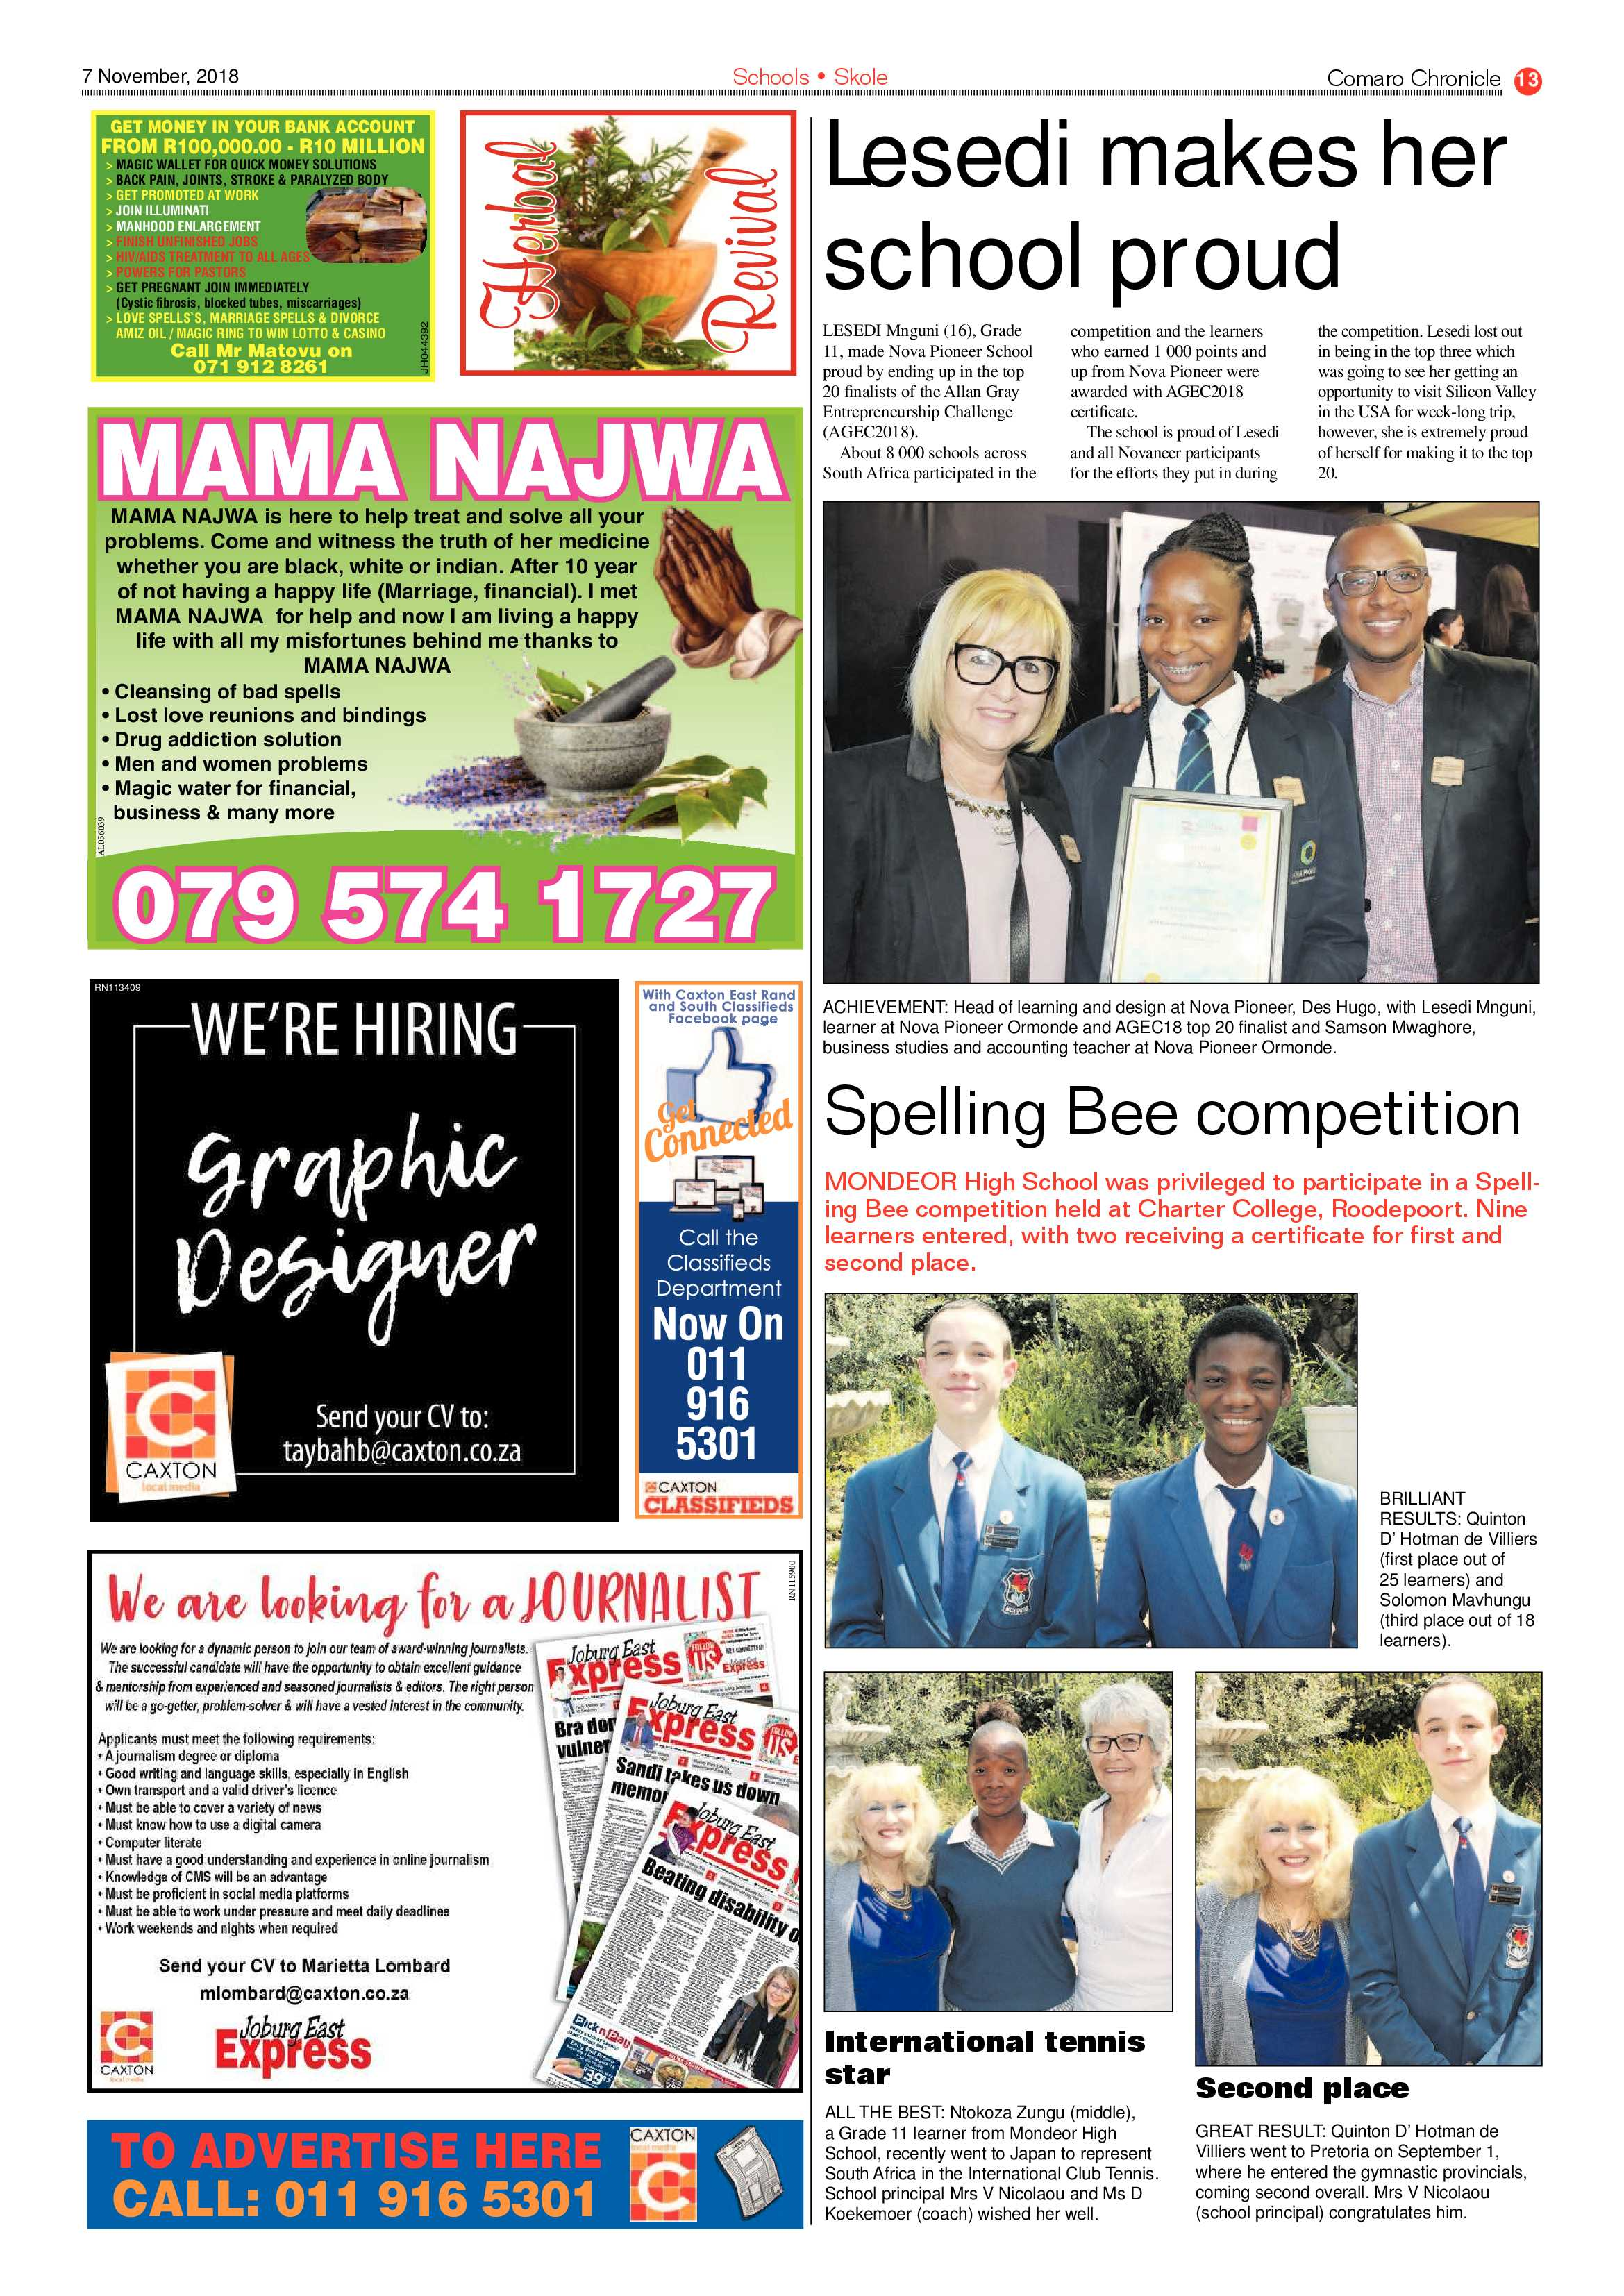 comaro-chronicle-07-november-2018-epapers-page-13